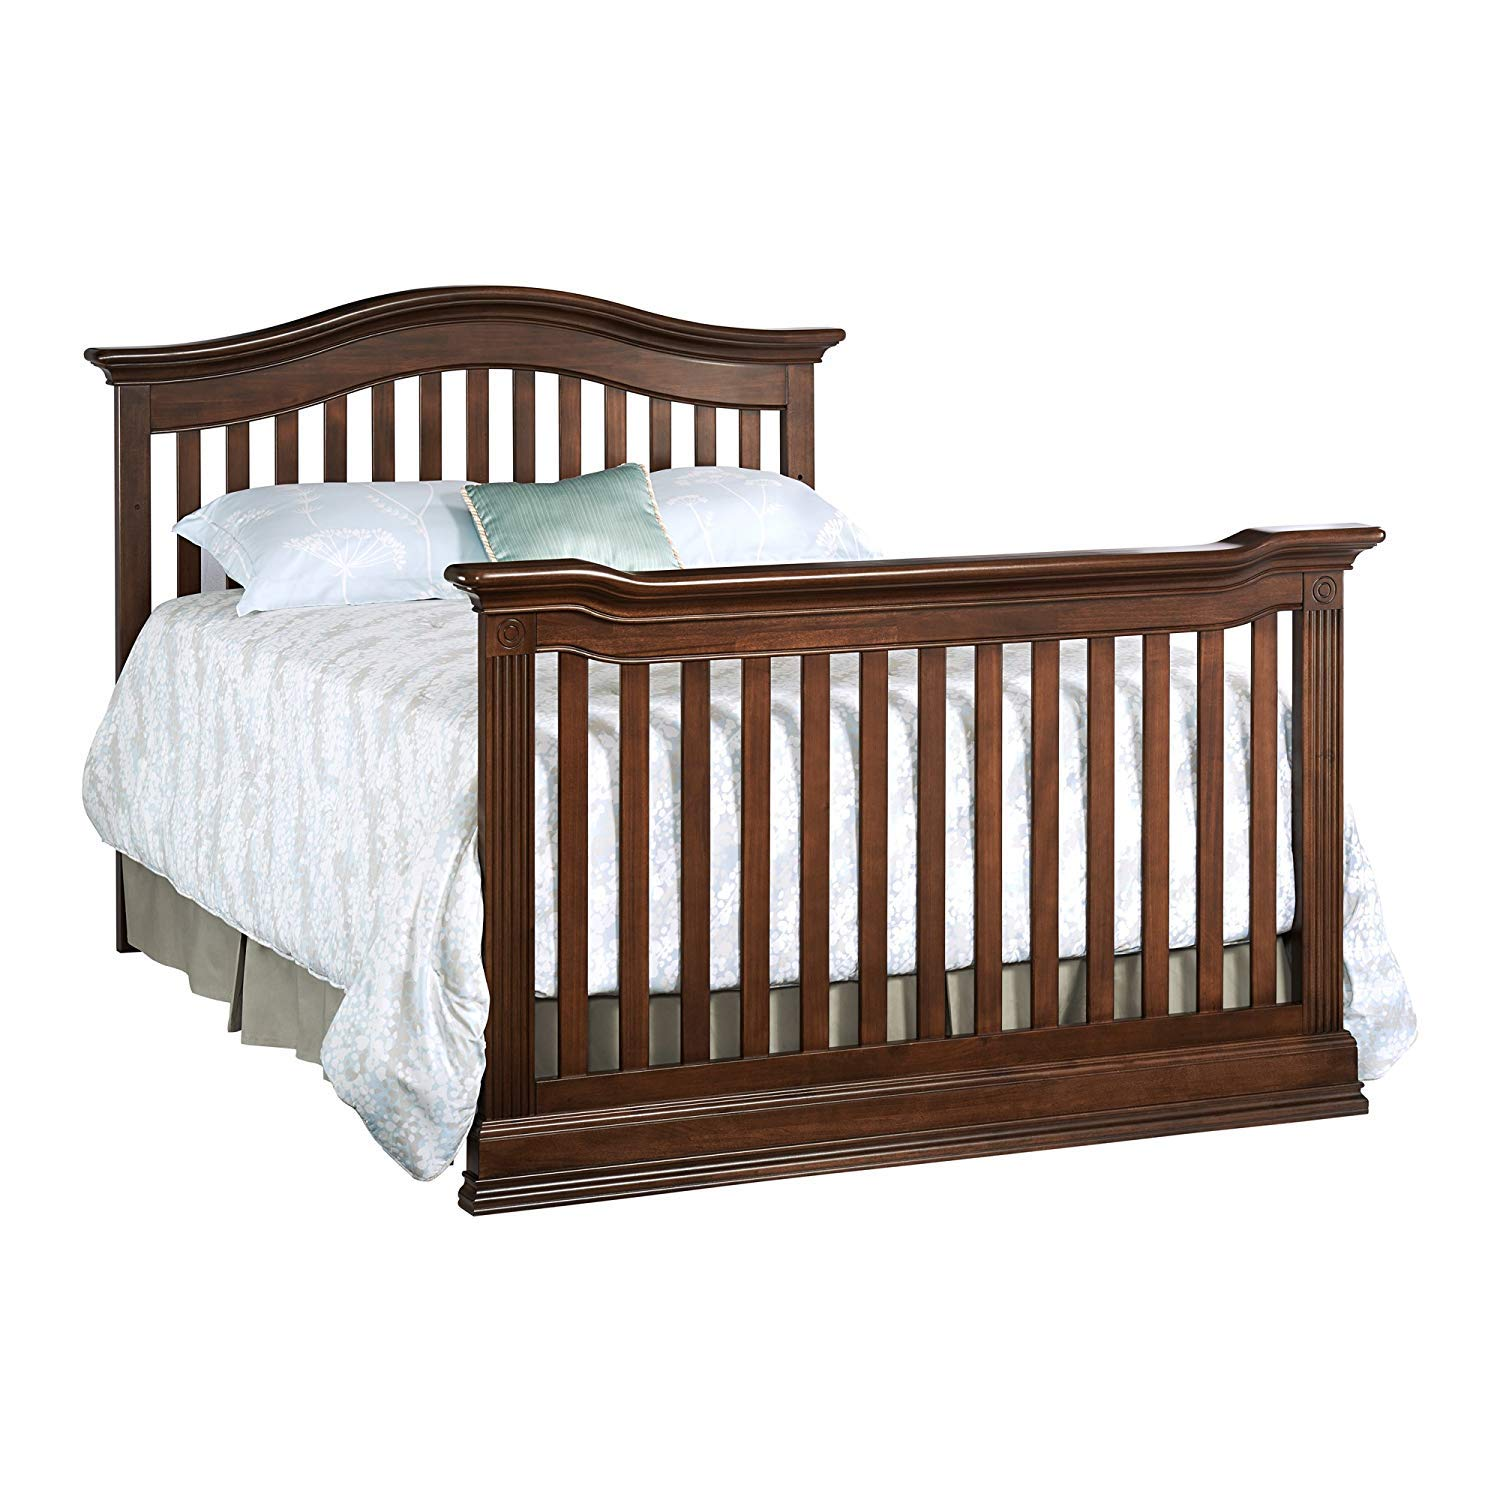 Baby Cache Montana Collection Crib Conversion Kit, Brown Sugar by Baby Cache (Image #1)